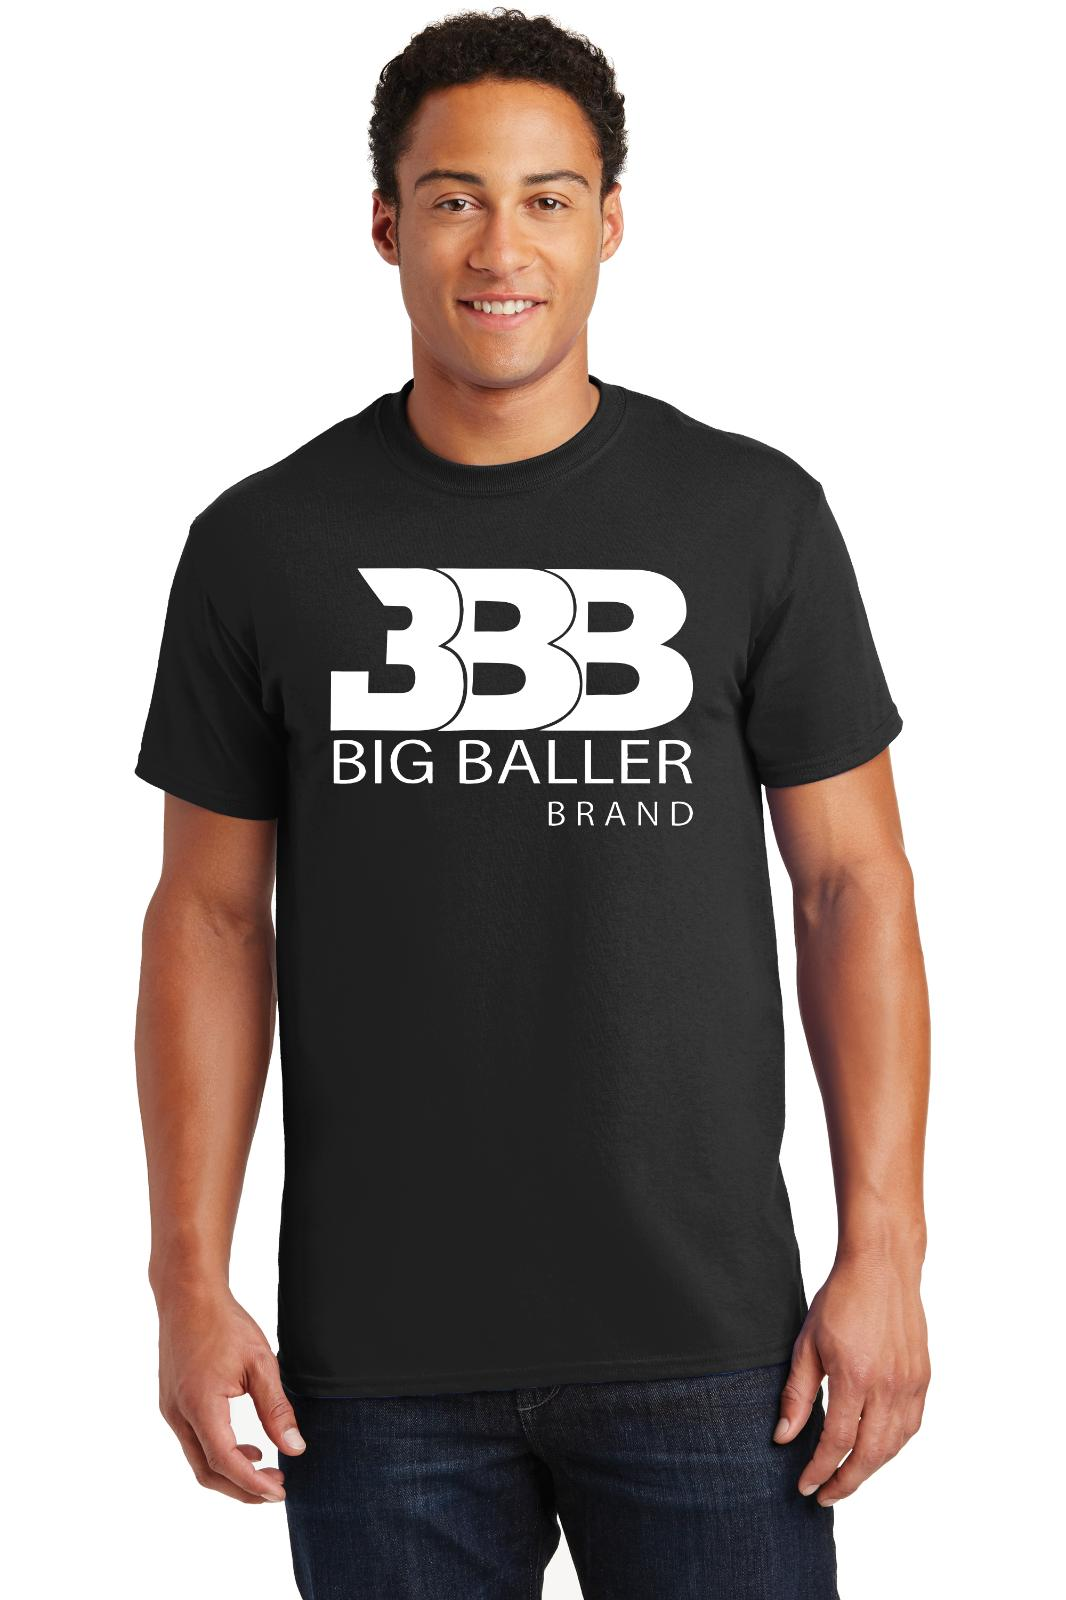 0aed8dfd111c Big Baller Brand T Shirt BBB LA Lakers Los Angeles Lonzo Showtime Tee  ShirtsFunny Unisex Casual Top Funny T Shirts For Women Funny Shirt From  Dragontee, ...